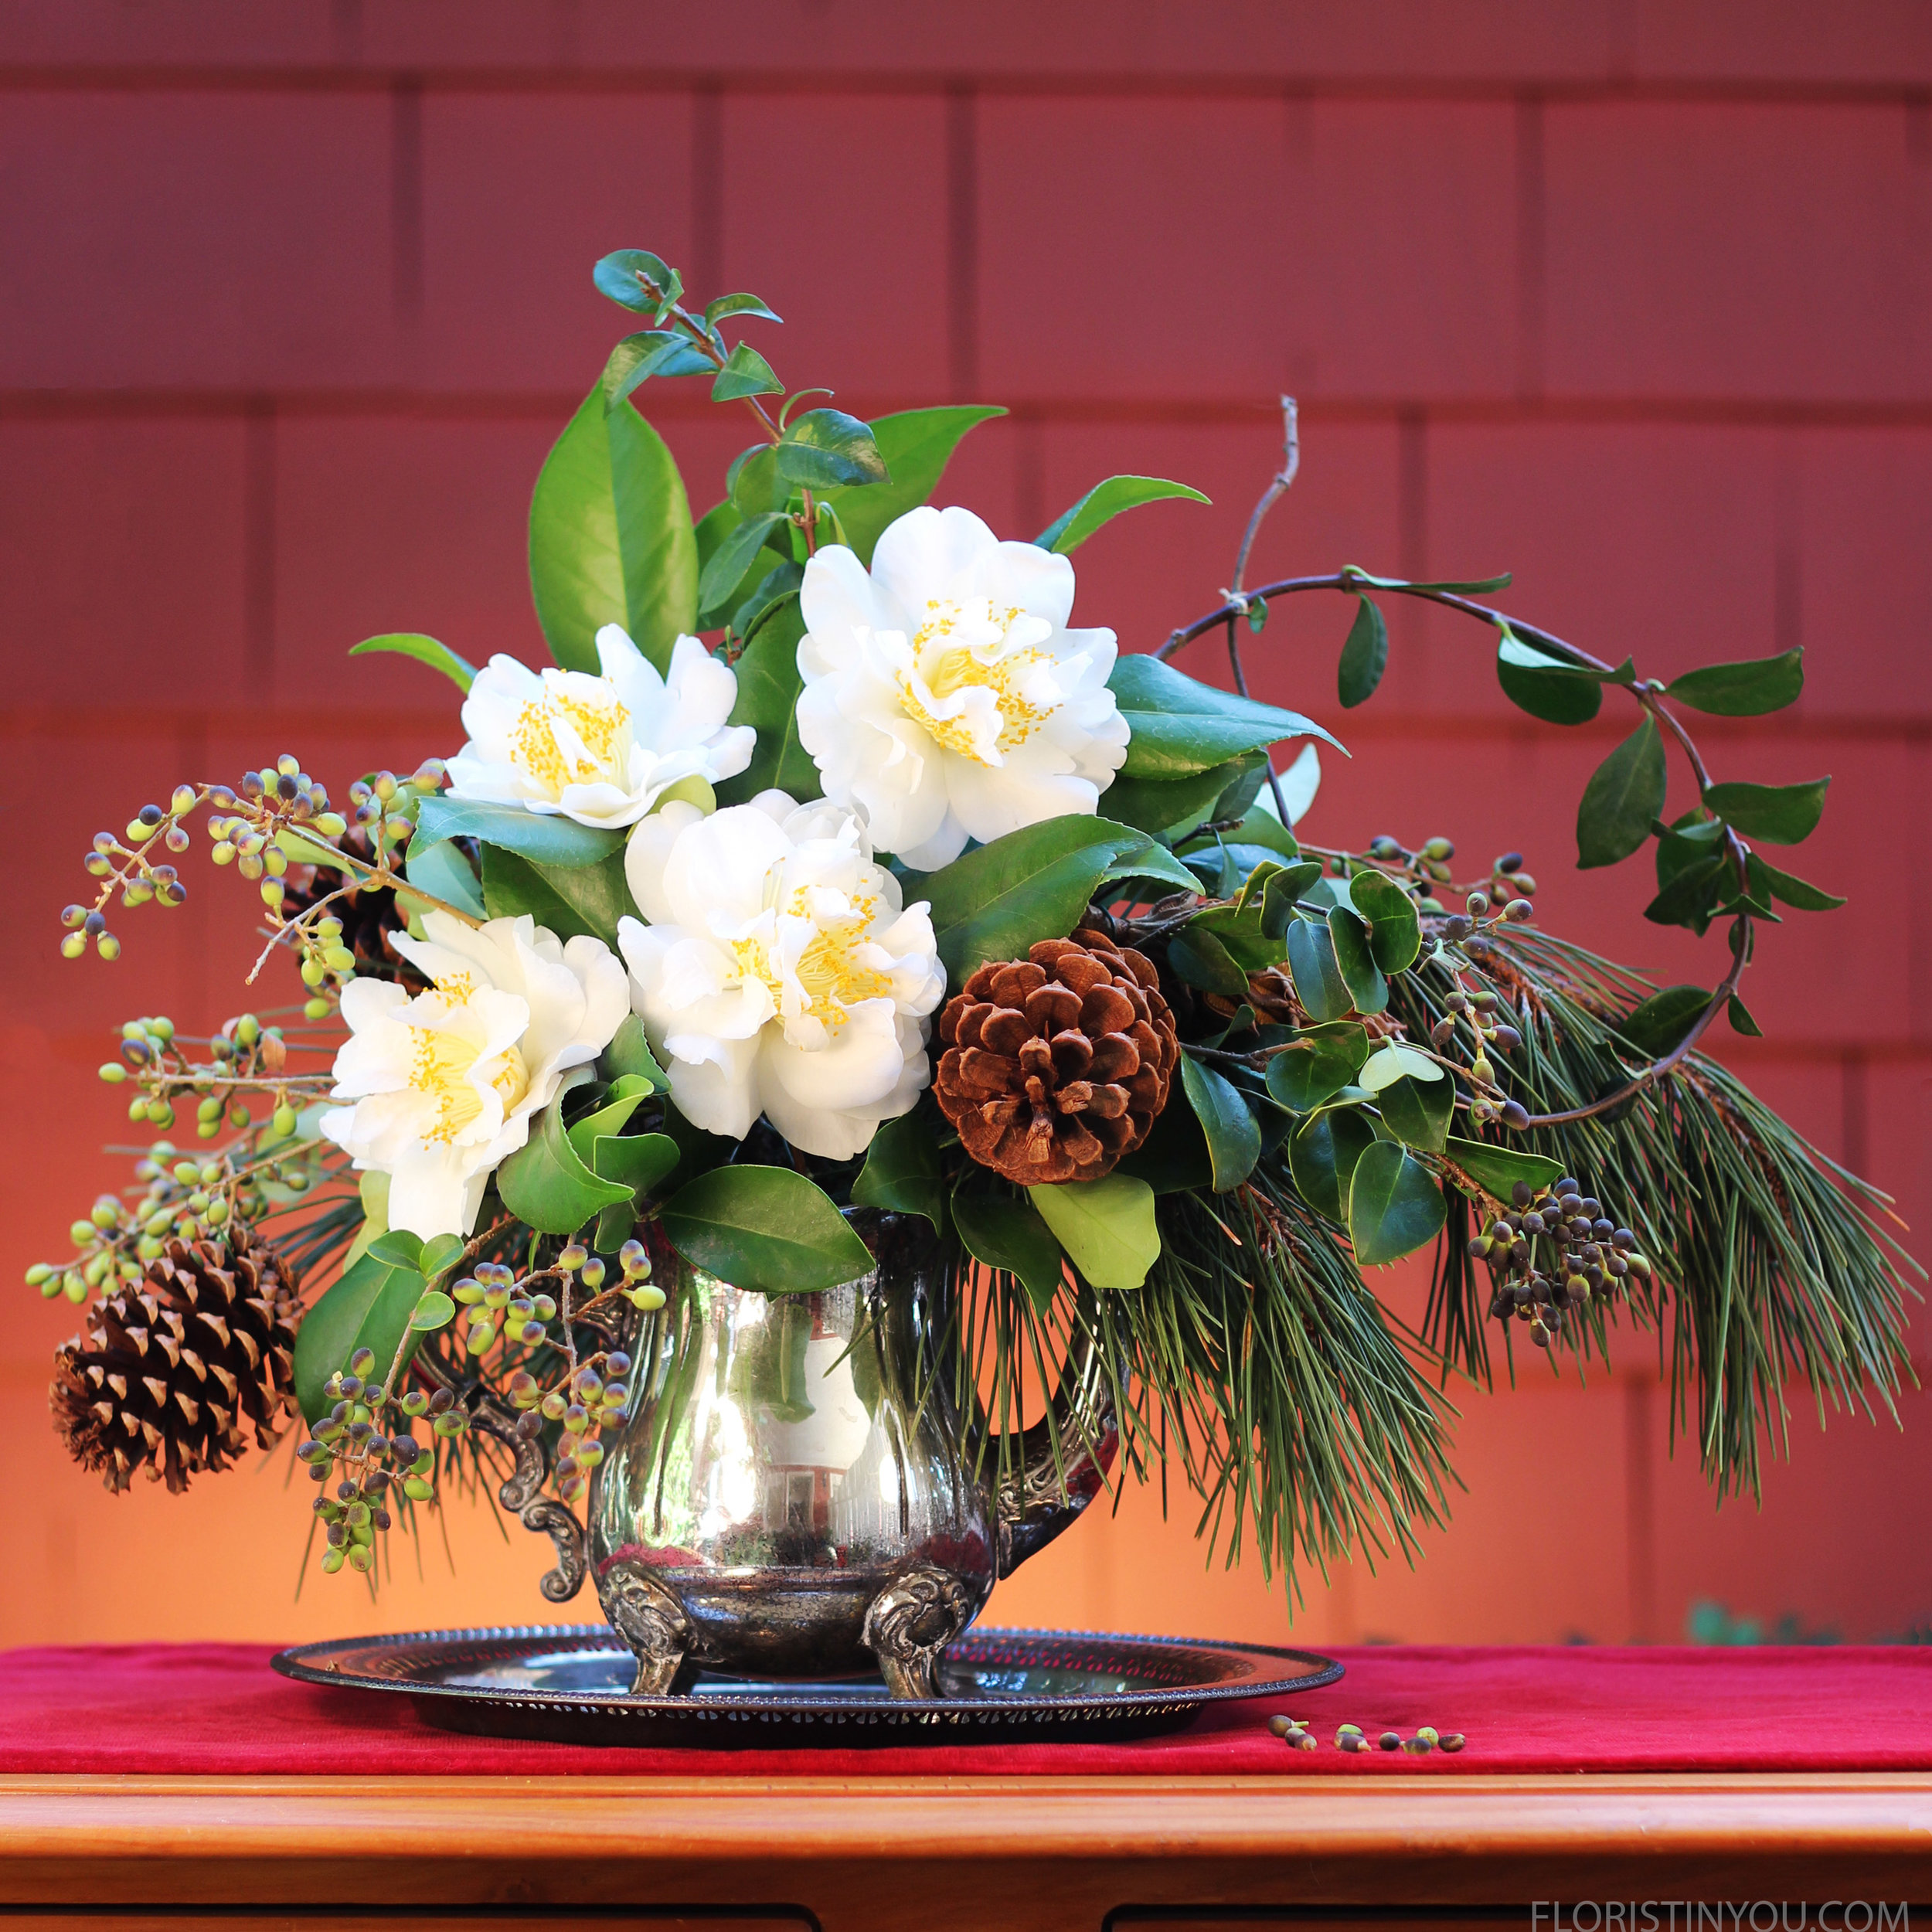 """Christmas Cuttings from my Yard                     Normal   0           false   false   false     EN-US   JA   X-NONE                                                                                                                                                                                                                                                                                                                                                                              /* Style Definitions */ table.MsoNormalTable {mso-style-name:""""Table Normal""""; mso-tstyle-rowband-size:0; mso-tstyle-colband-size:0; mso-style-noshow:yes; mso-style-priority:99; mso-style-parent:""""""""; mso-padding-alt:0in 5.4pt 0in 5.4pt; mso-para-margin:0in; mso-para-margin-bottom:.0001pt; mso-pagination:widow-orphan; font-size:12.0pt; font-family:Cambria; mso-ascii-font-family:Cambria; mso-ascii-theme-font:minor-latin; mso-hansi-font-family:Cambria; mso-hansi-theme-font:minor-latin;}"""